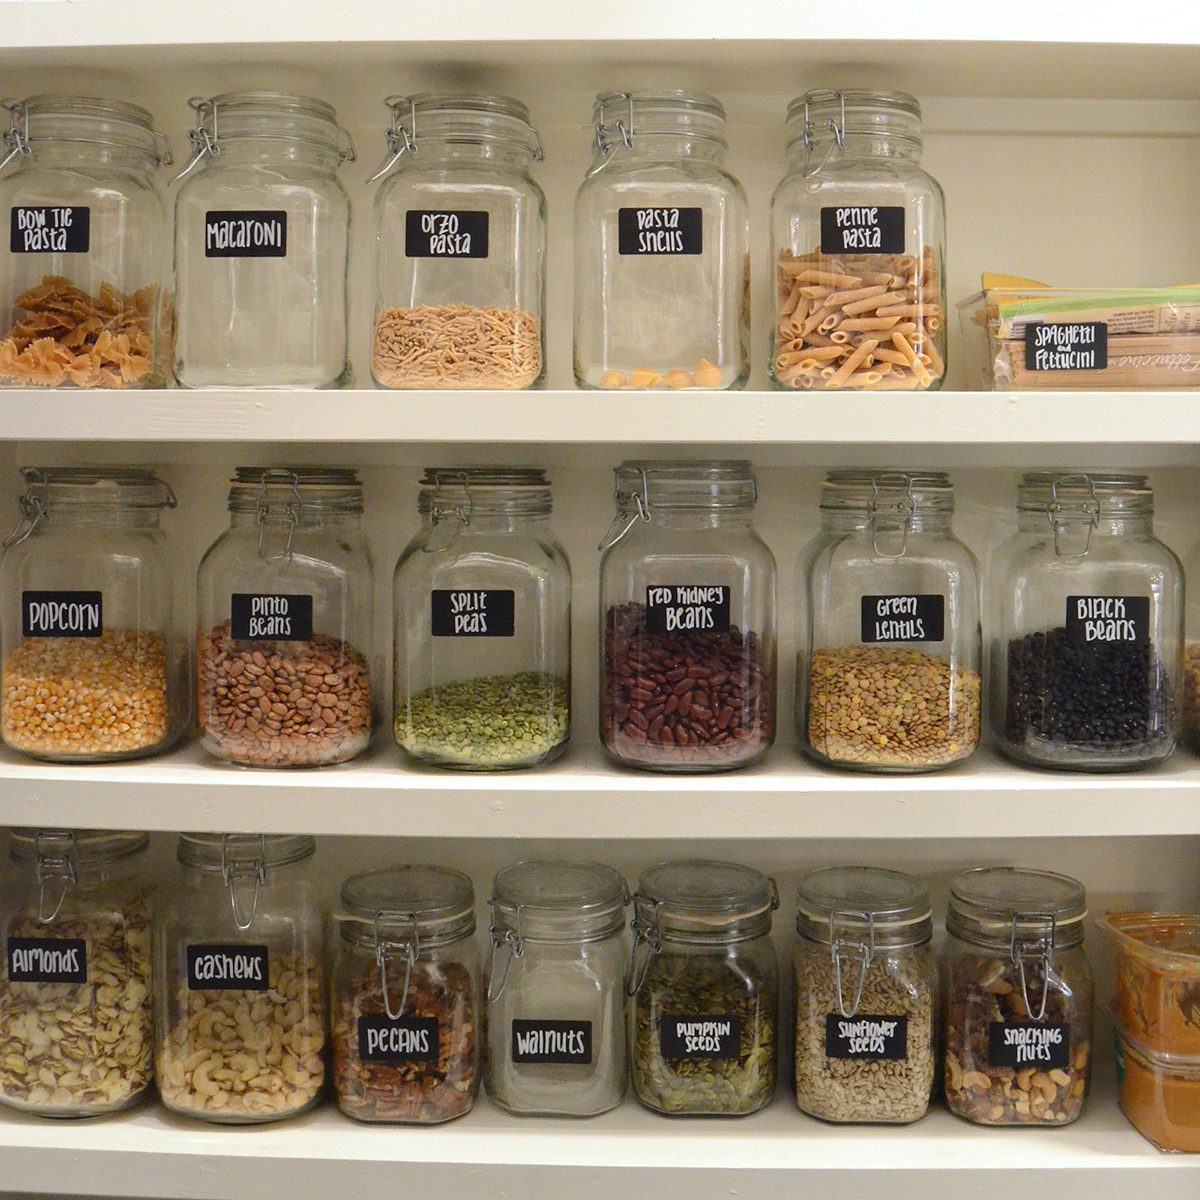 Pantry Organization 14 Easy Pantry Organization Tips From The Experts Taste Of Home